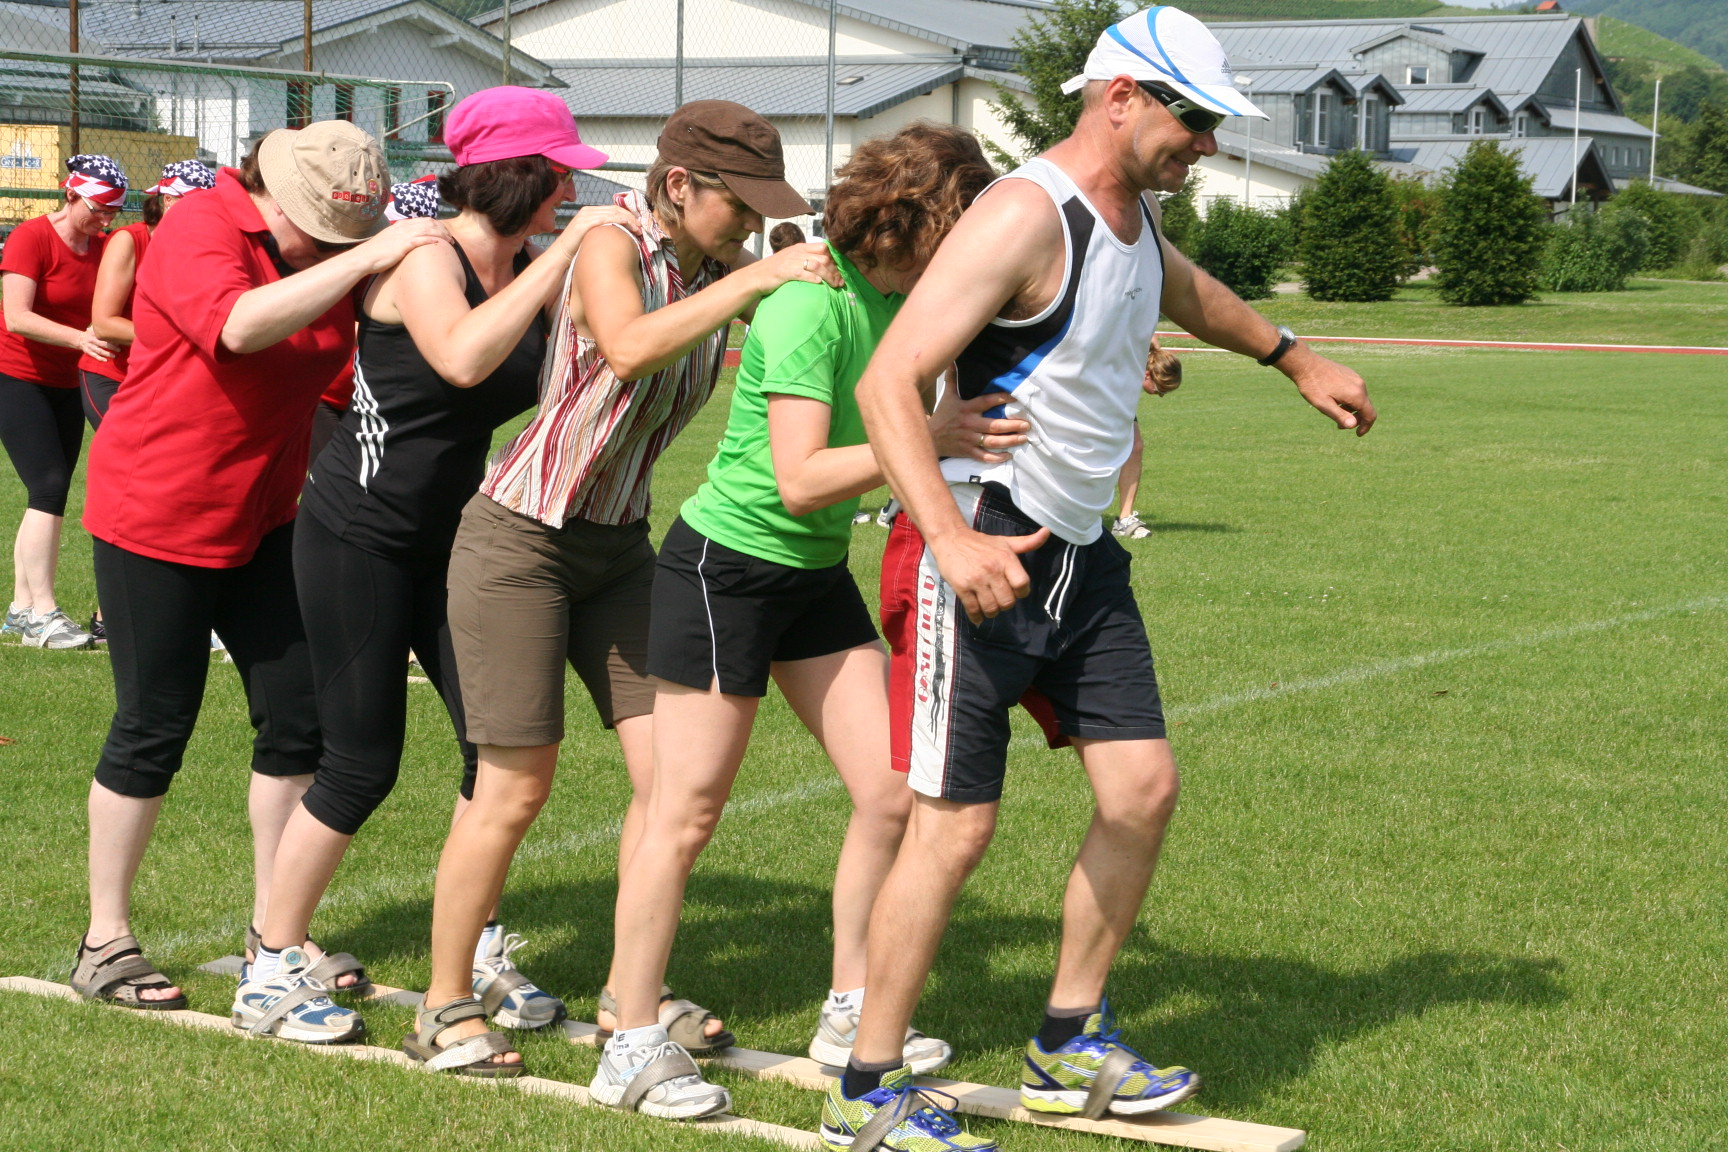 2012 06_Taufe_und_Sommerolympiade_084